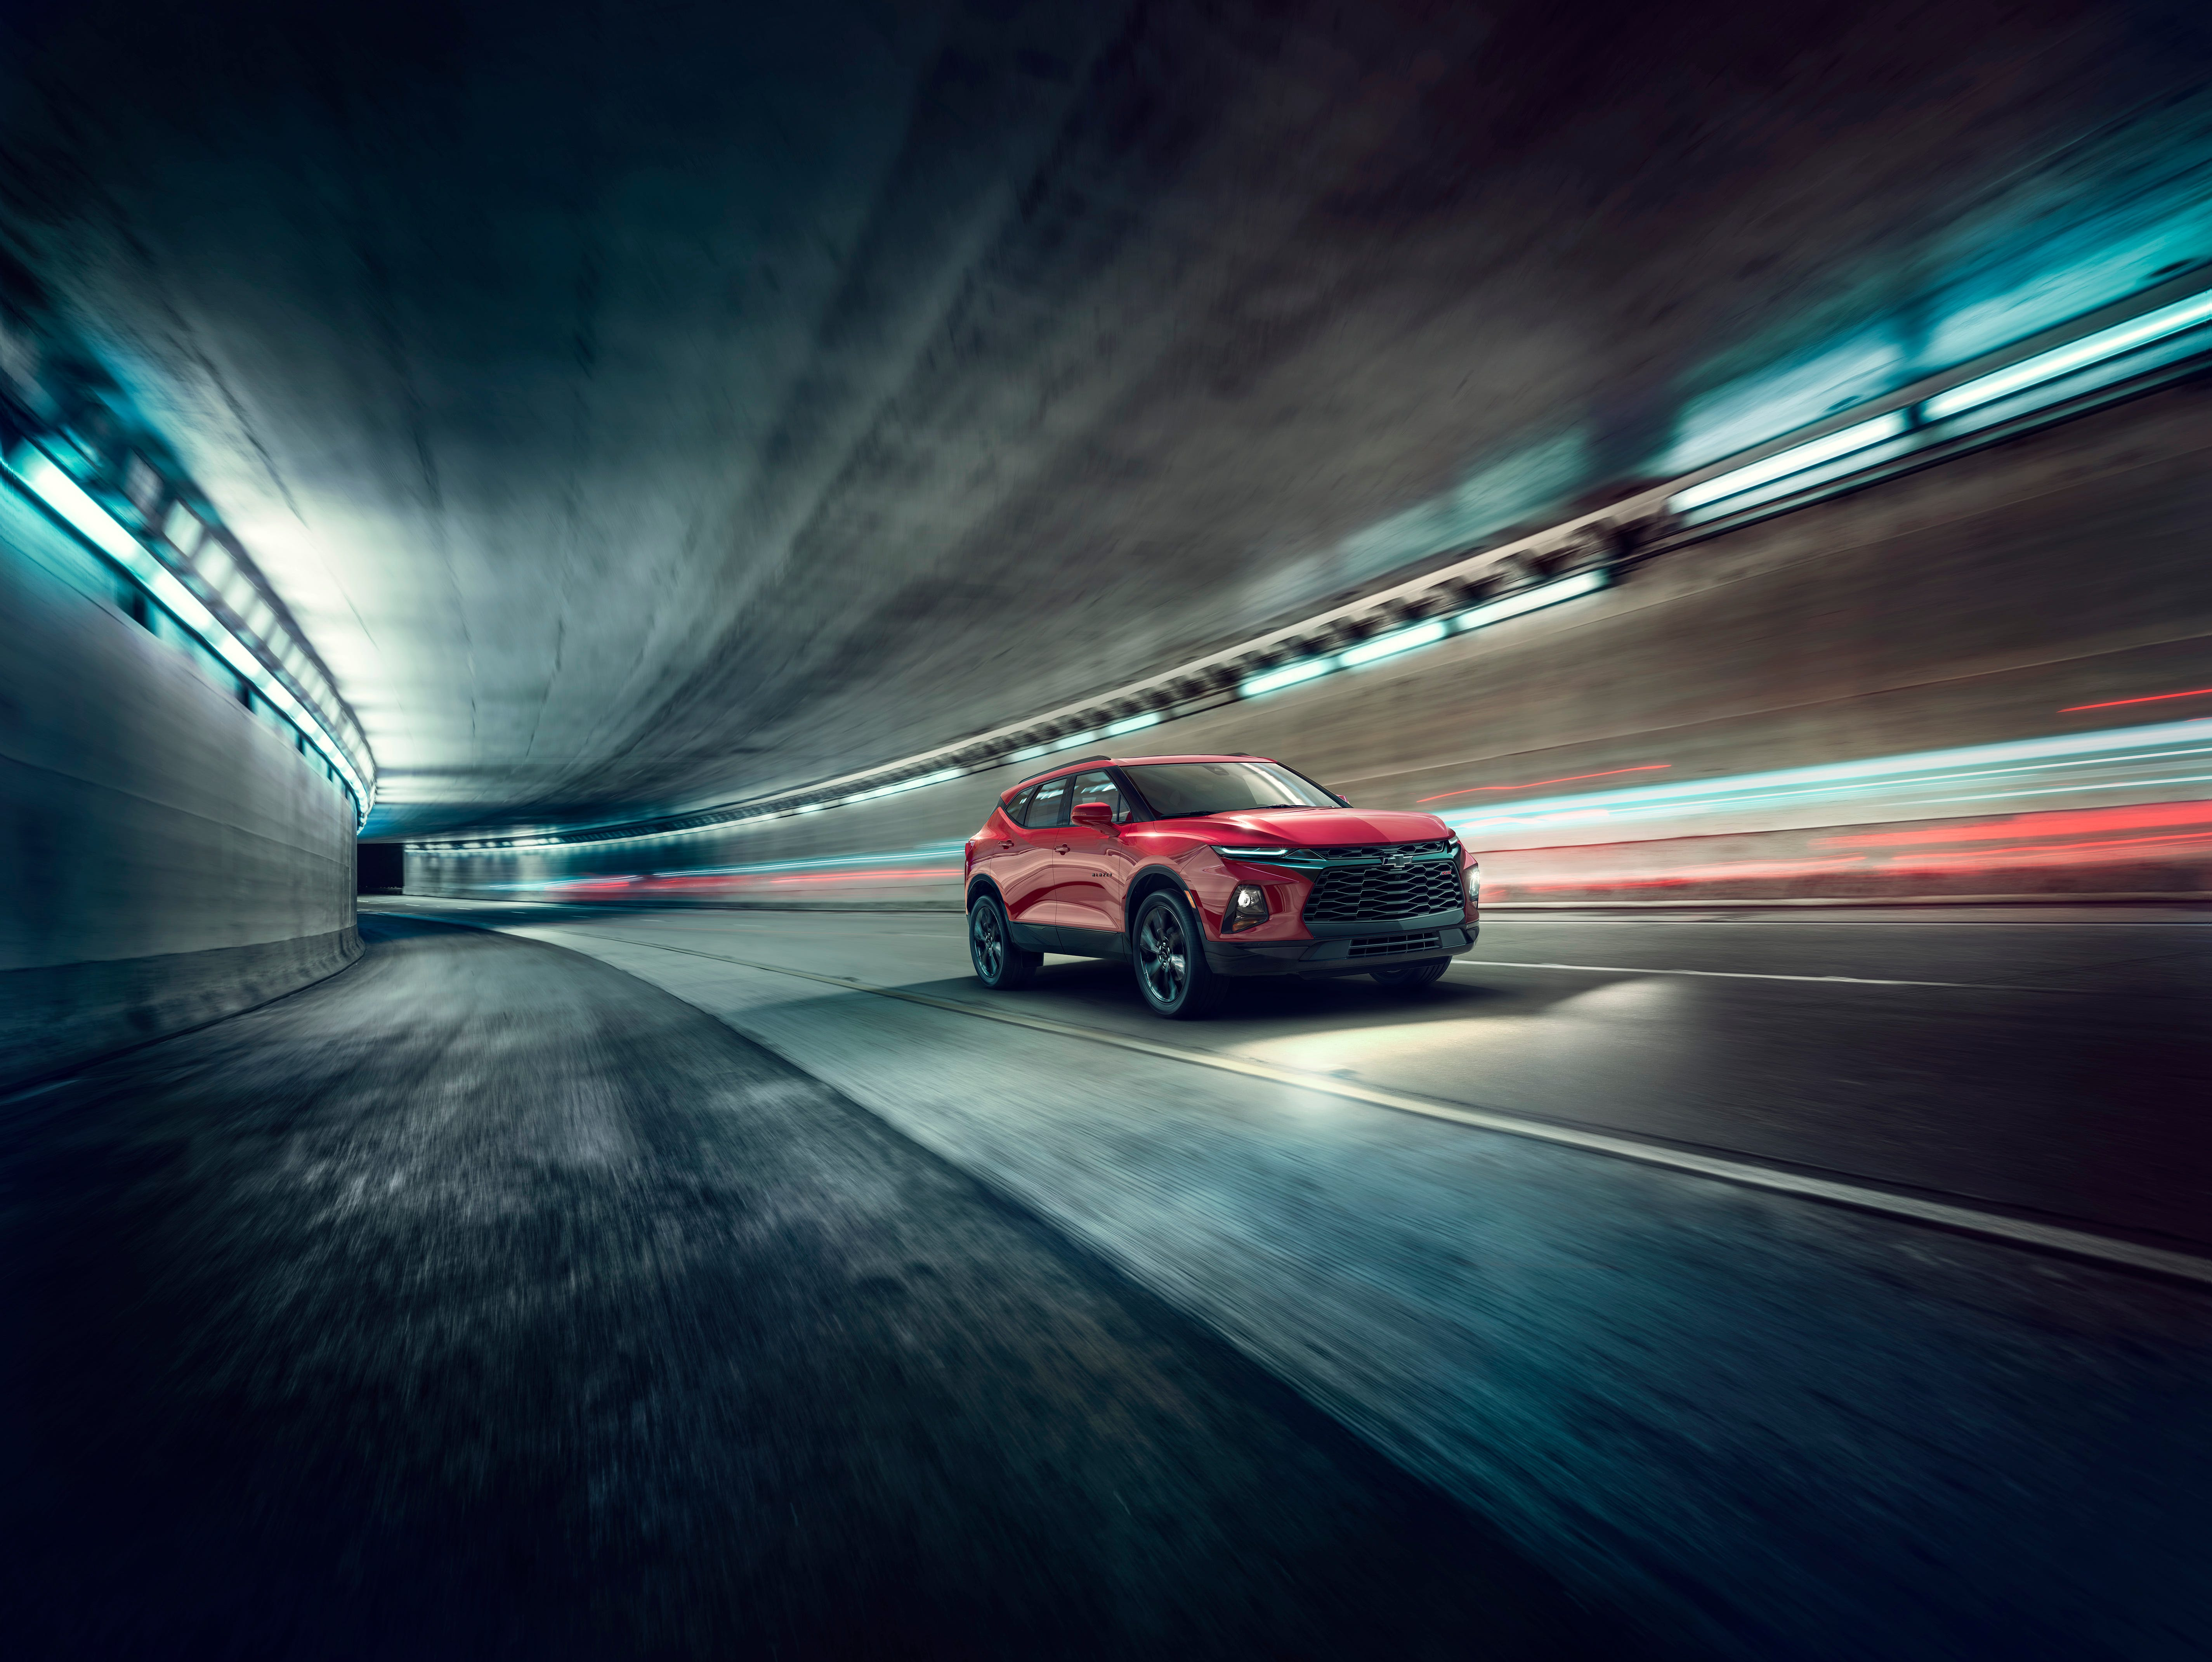 The 2019 Chevrolet Blazer RS. General Motors weeks ago began selling a new SUV called the Chevy Blazer, which takes an inspiration from the long-gone Chevy TrailBlazer.